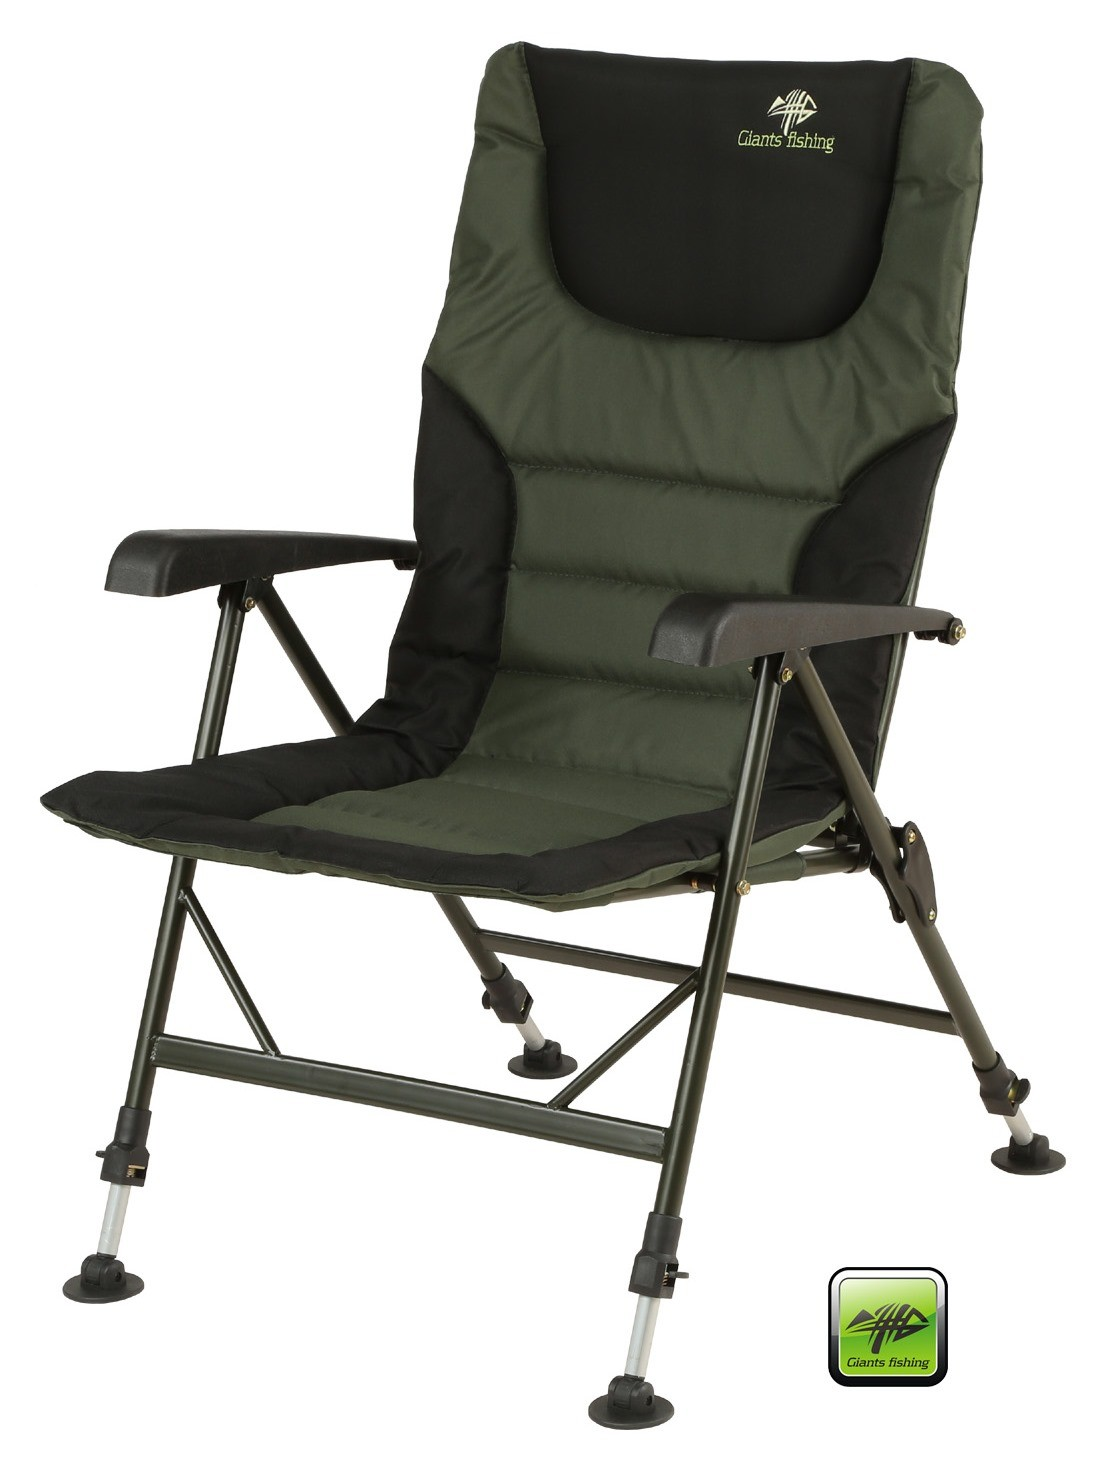 GIANTS FISHING Kreslo Komfy Plus Chair